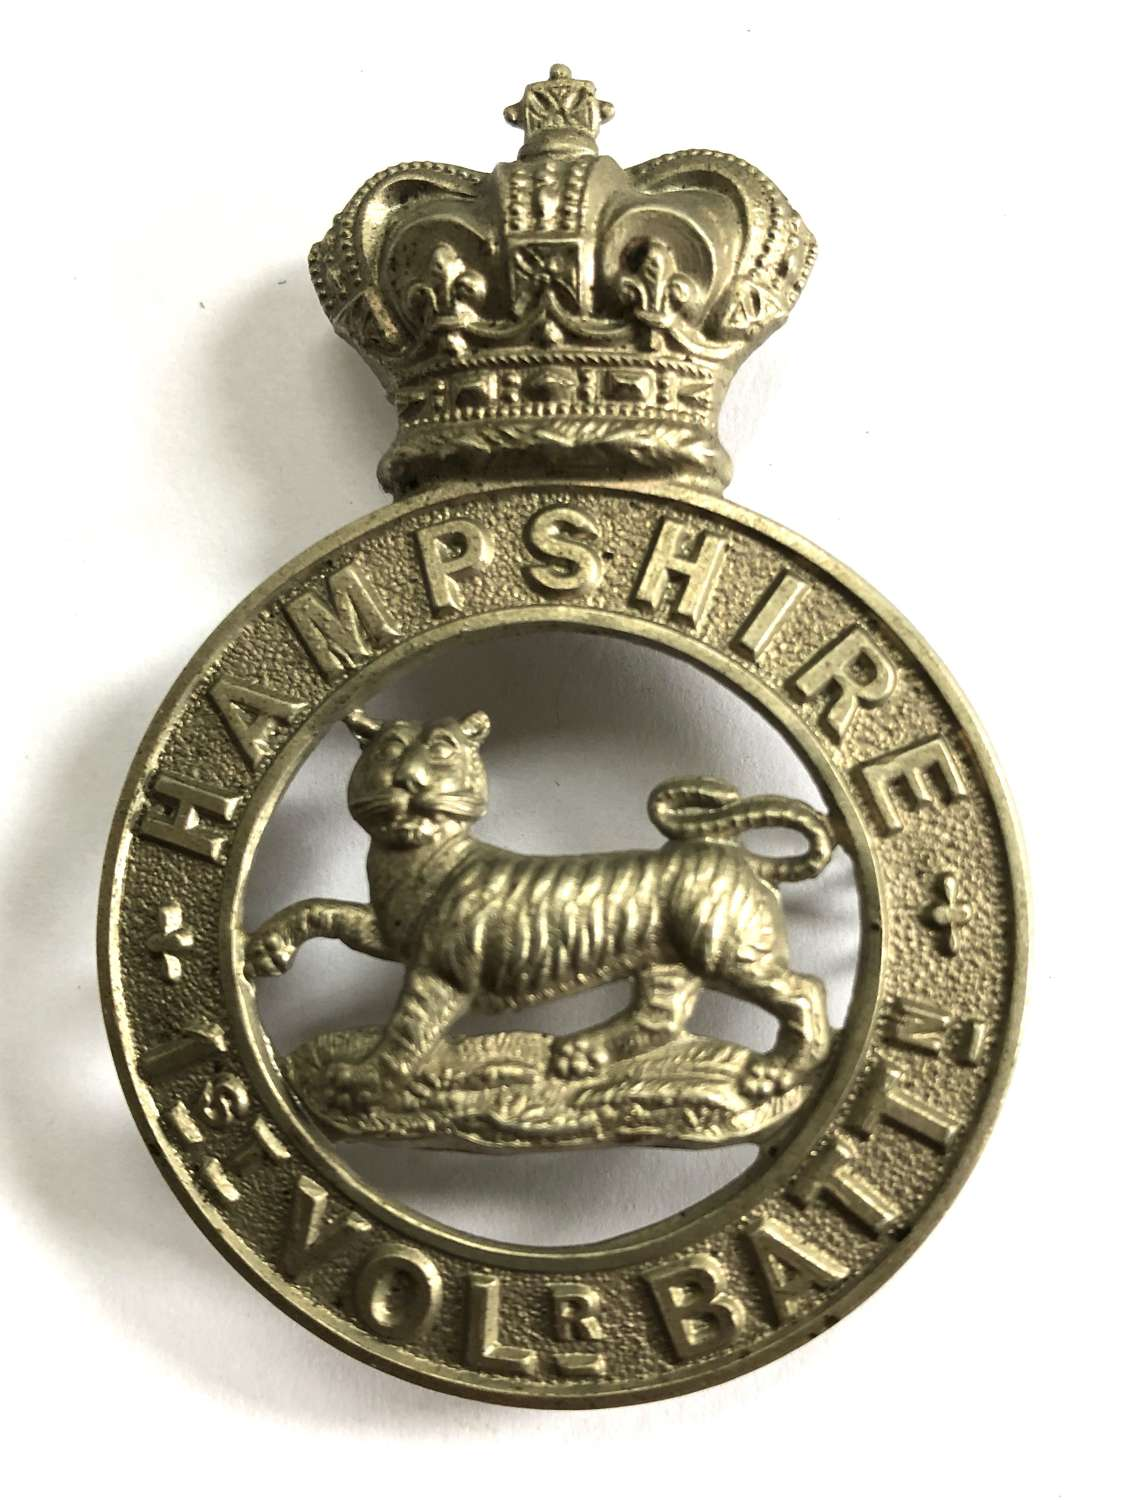 1st VB Hampshire Regiment Victorian OR's glengarry badge c1885-96